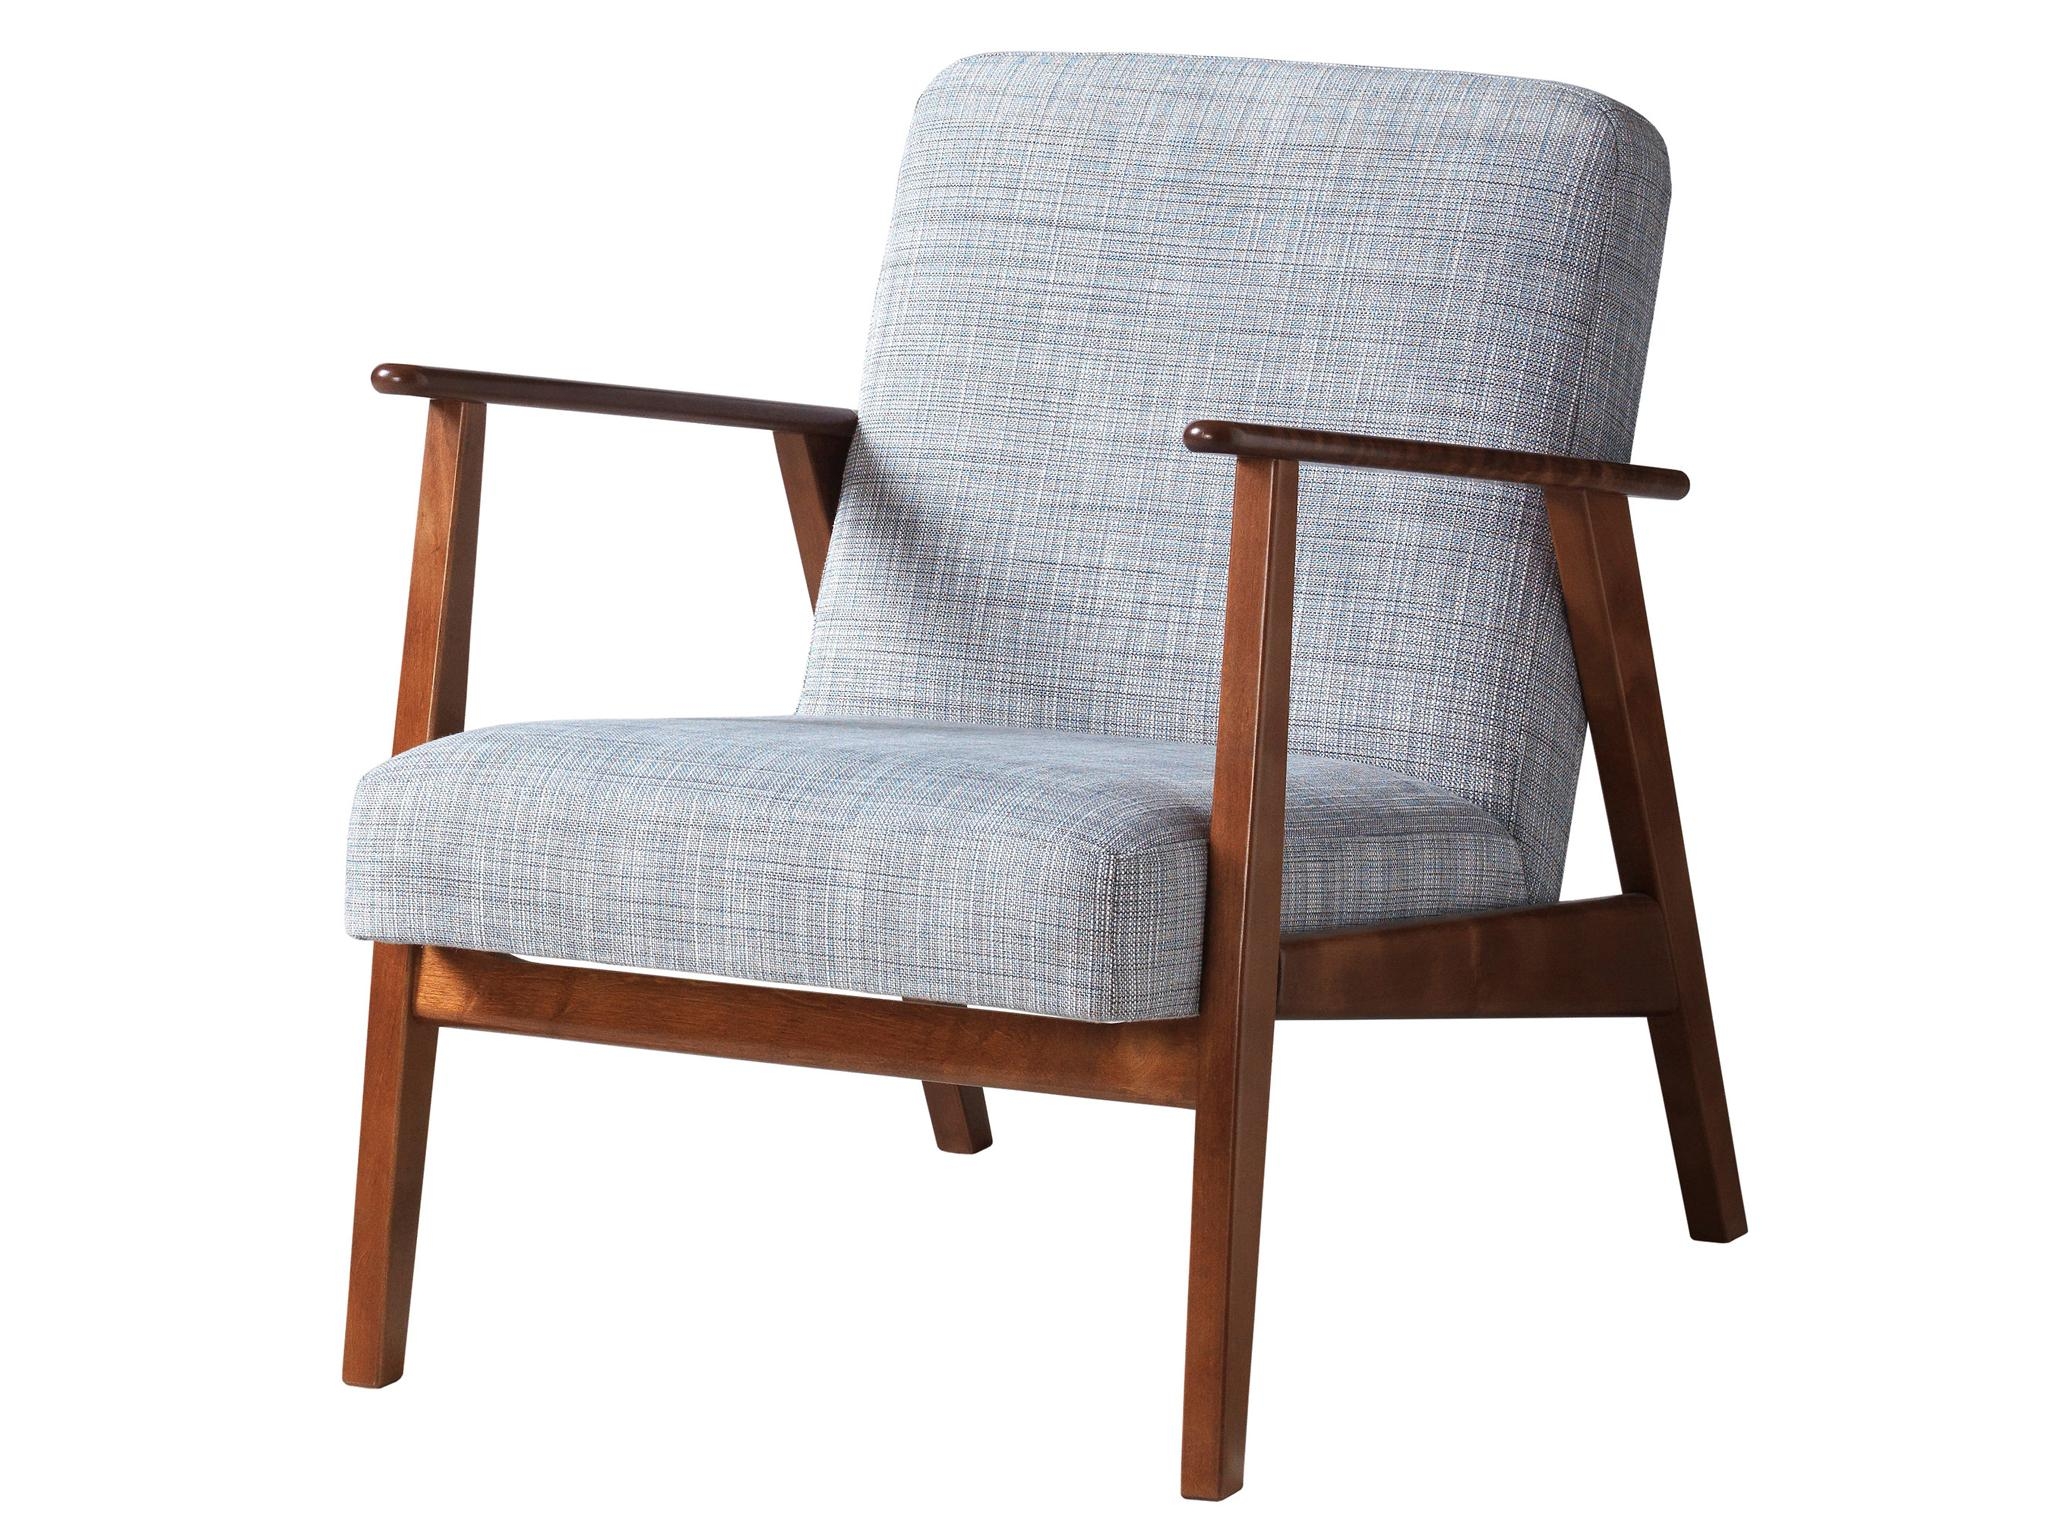 Just As We Got Used To Ikeas Incredible Prices The Swedish Furniture Giant Surprised Us All With Stunningly Bargainous Ekenset Armchair